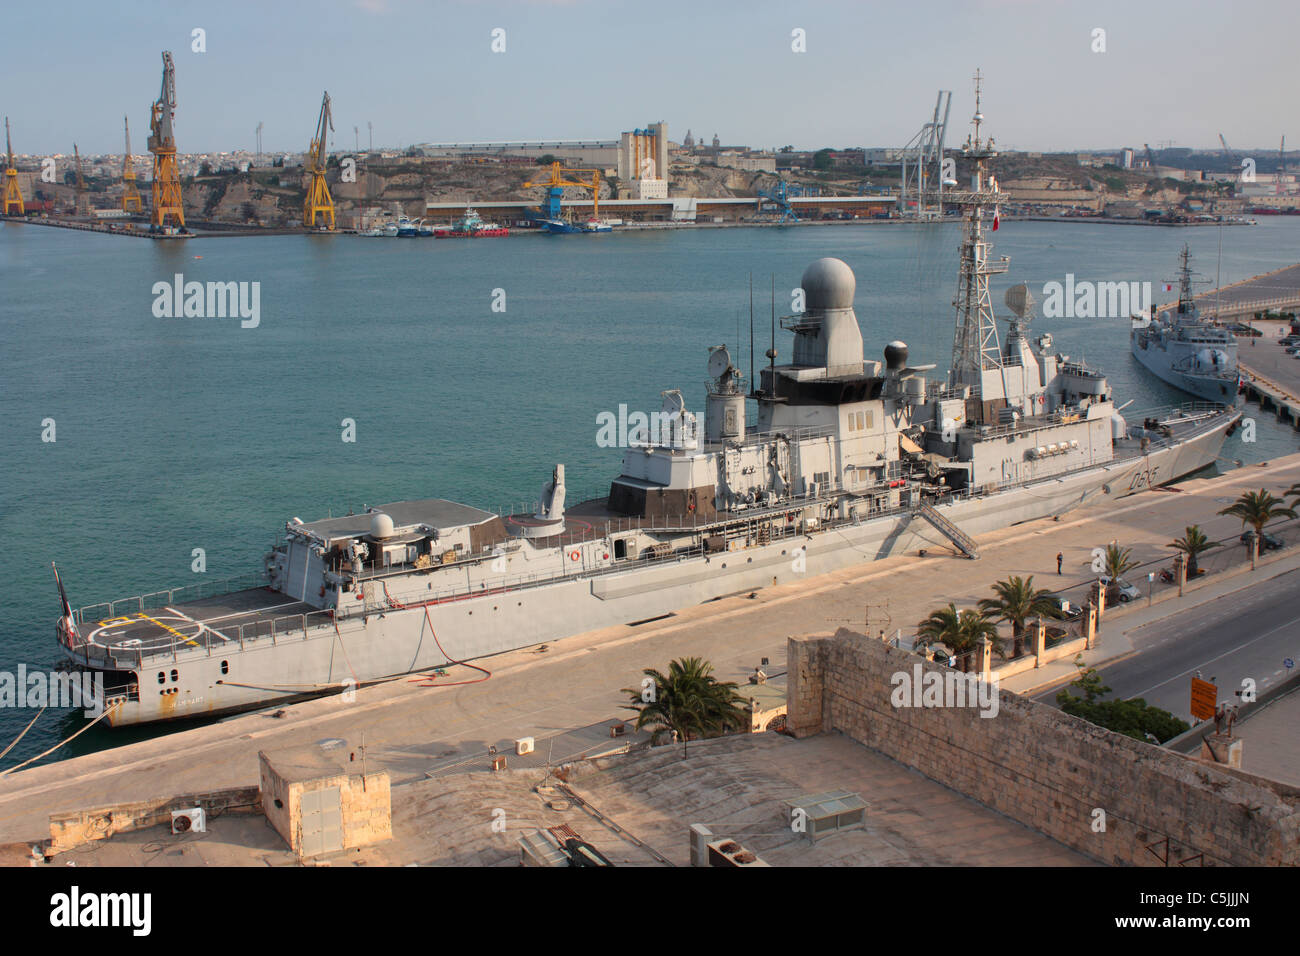 The French Navy frigate Jean Bart in Malta's Grand Harbour - Stock Image